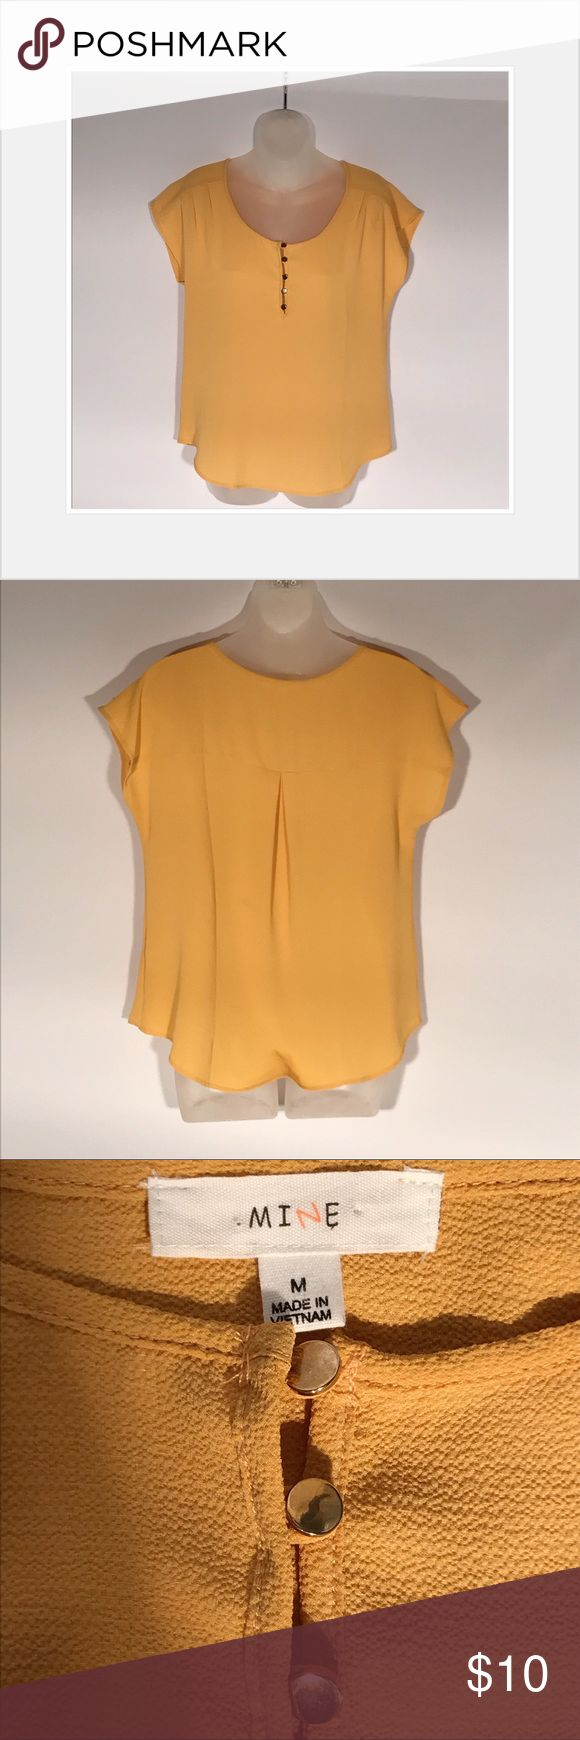 Short sleeve top Mustard yellow short sleeve top.  Has crepe polyester fabric and gold buttons.  Great condition. Tops